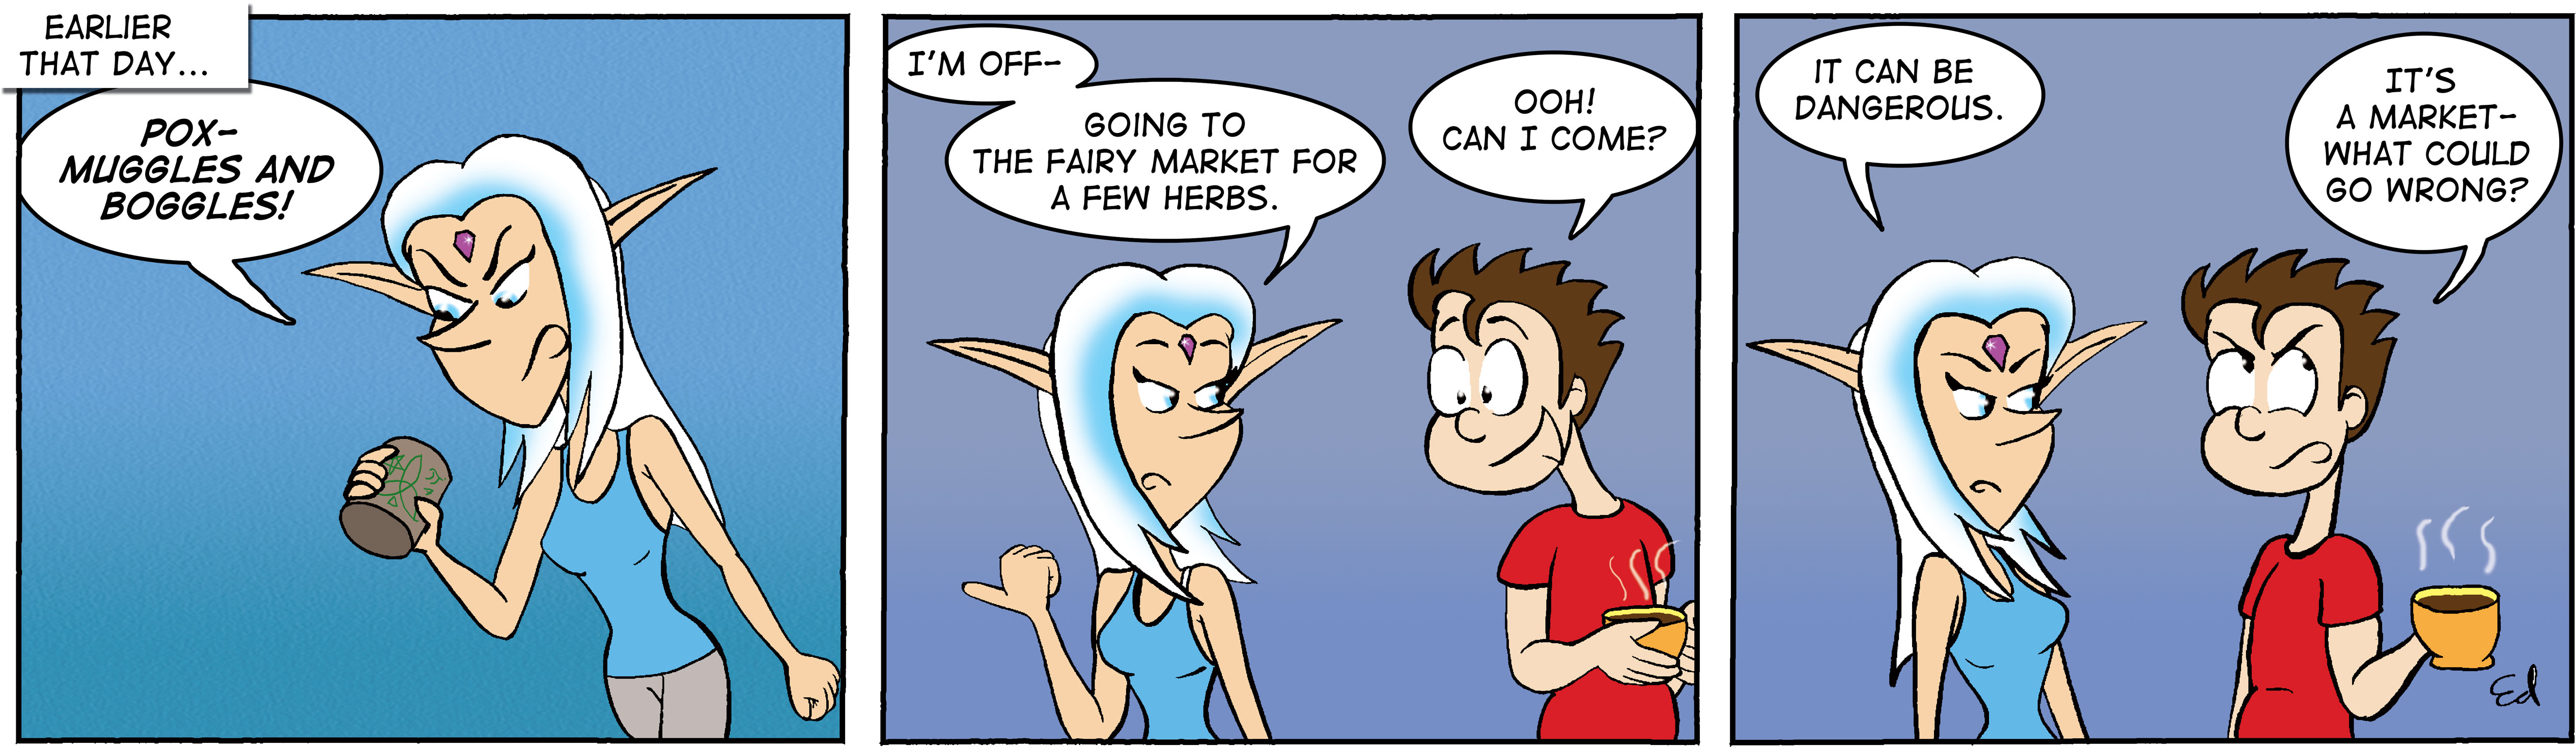 A Funny Thing Happened On The Way To The Fairie Market 2